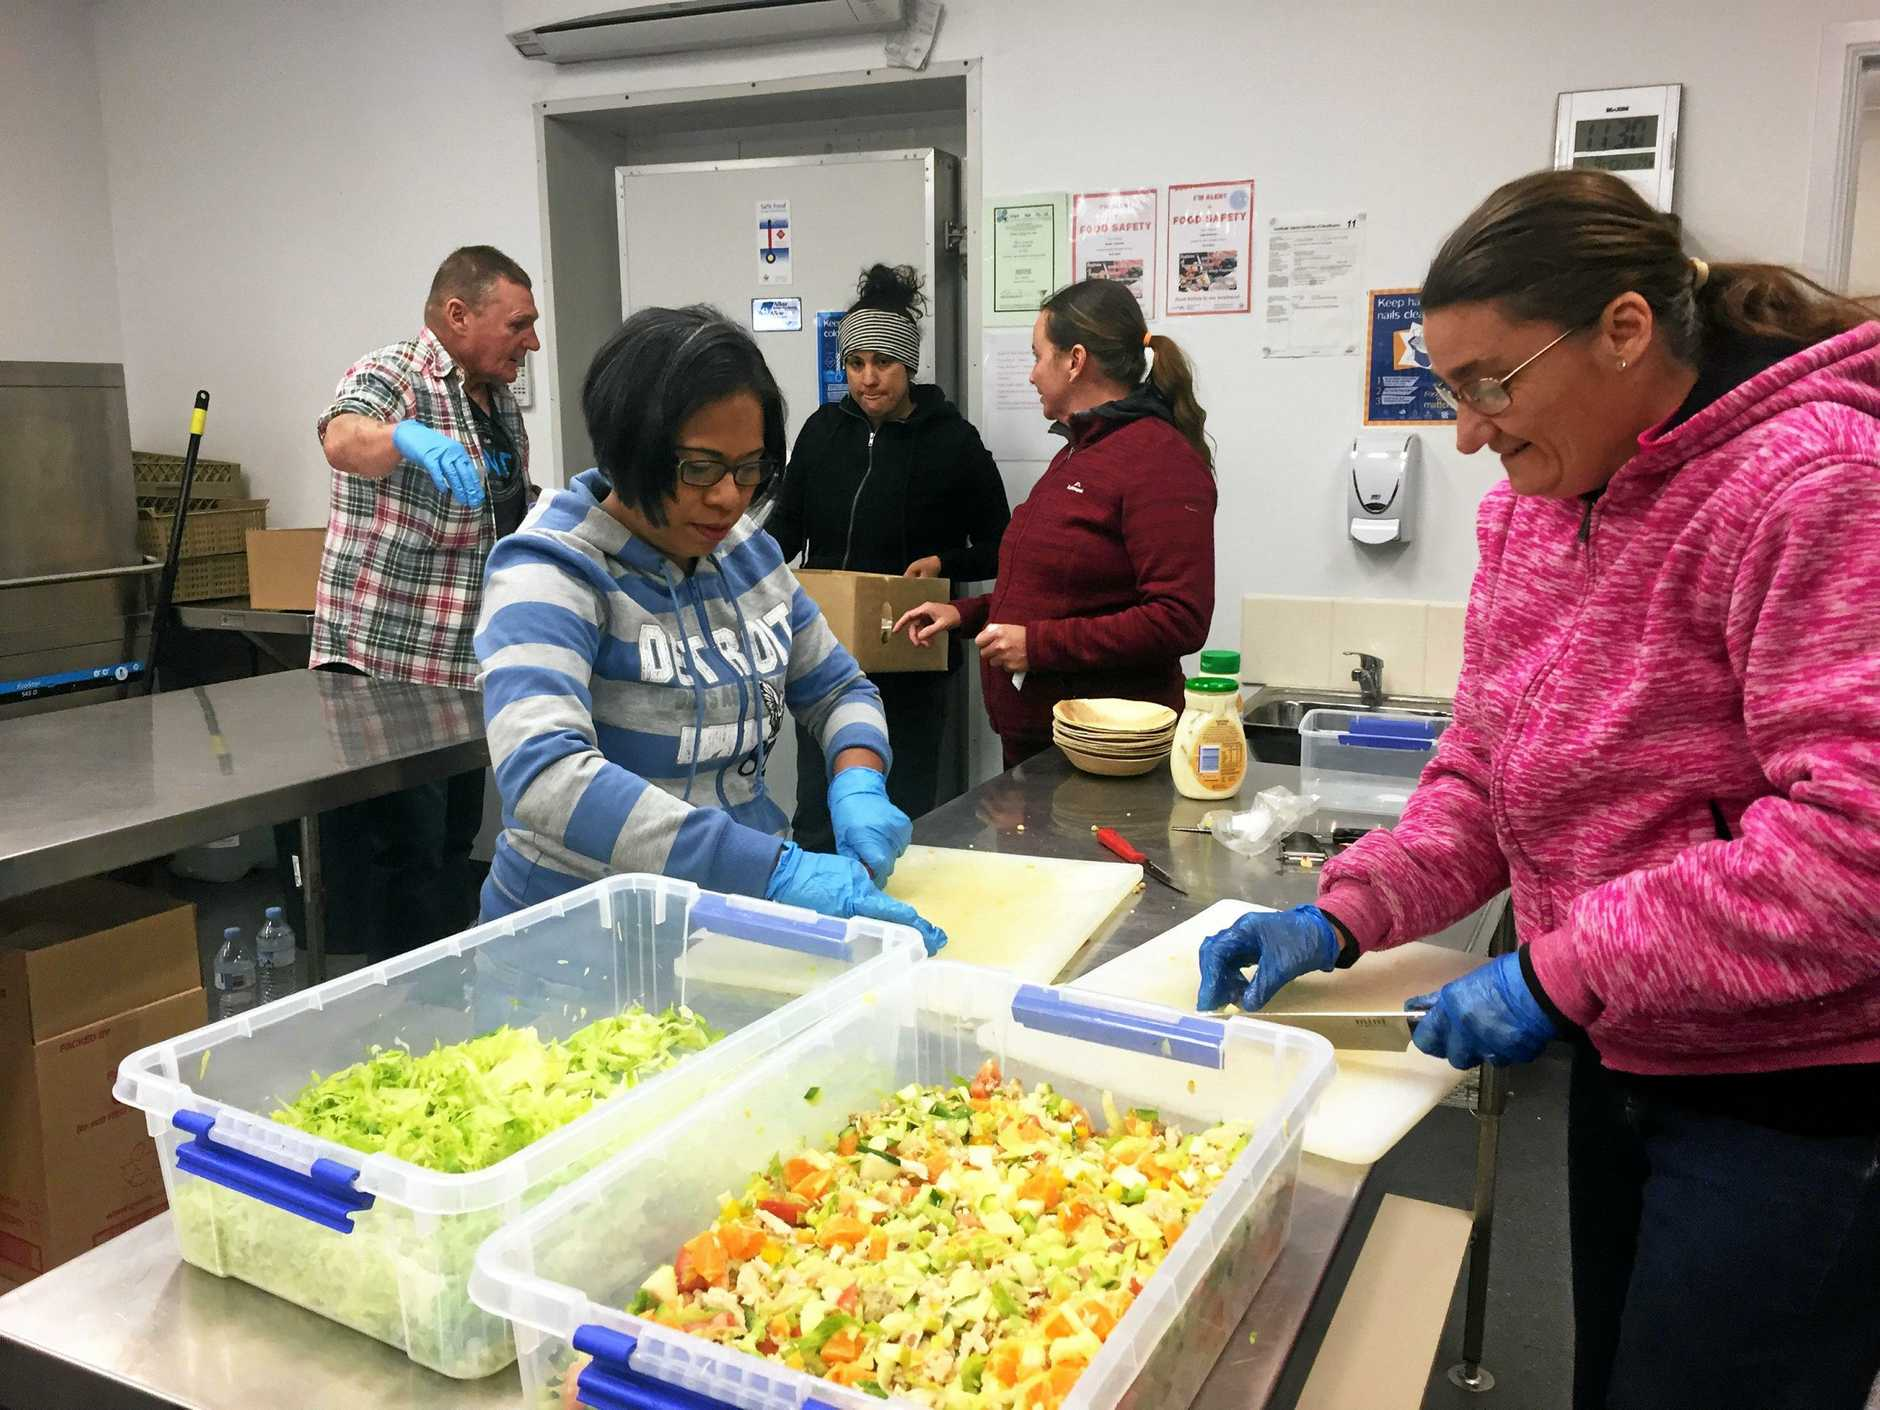 HELPING HAND: Chia Eastly and Rachel Ellis prepare meals for emergency crews and displaced residents.